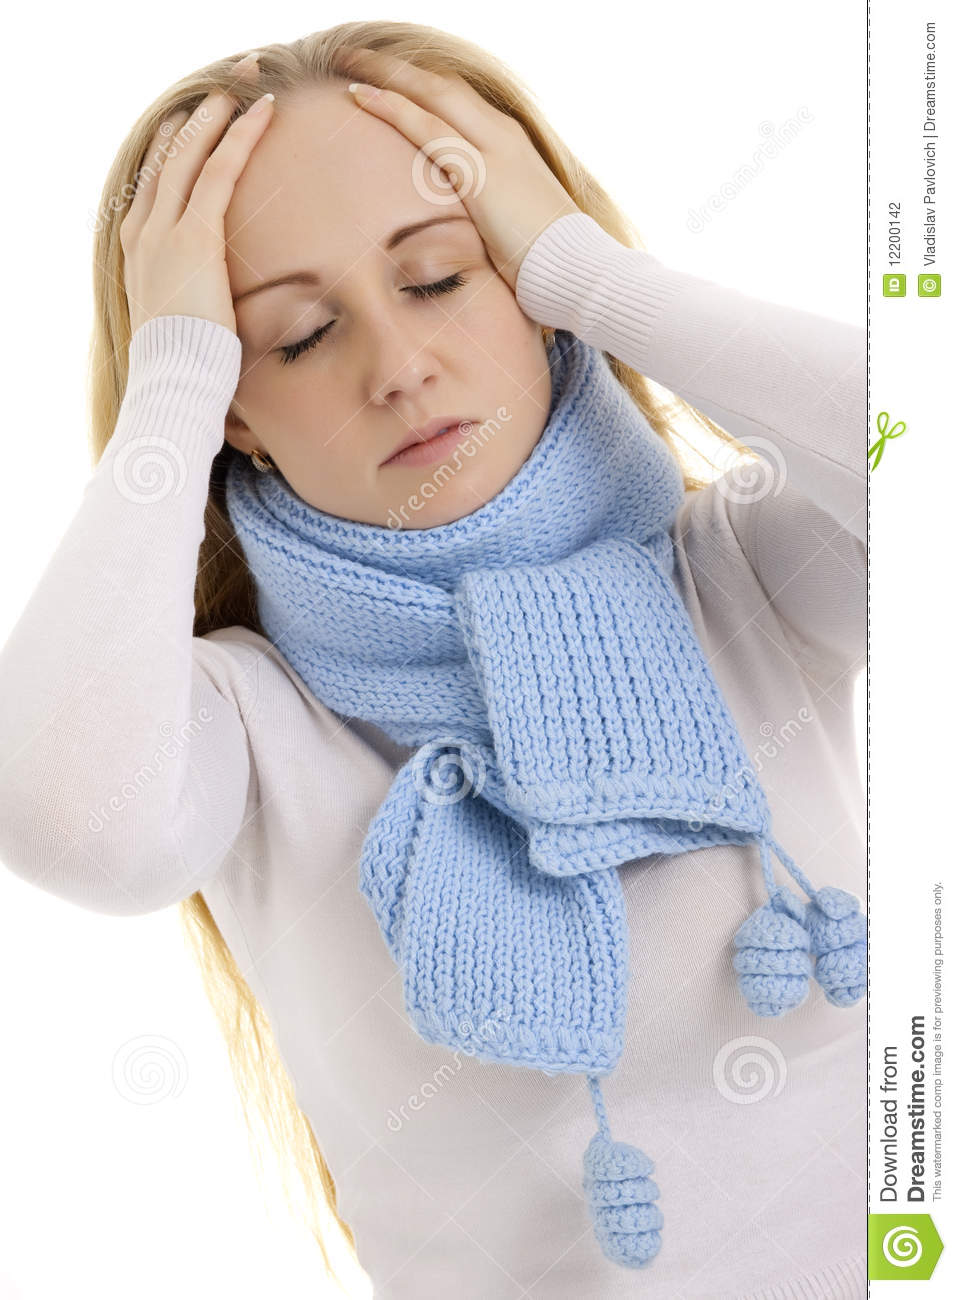 More similar stock images of woman feeling sick